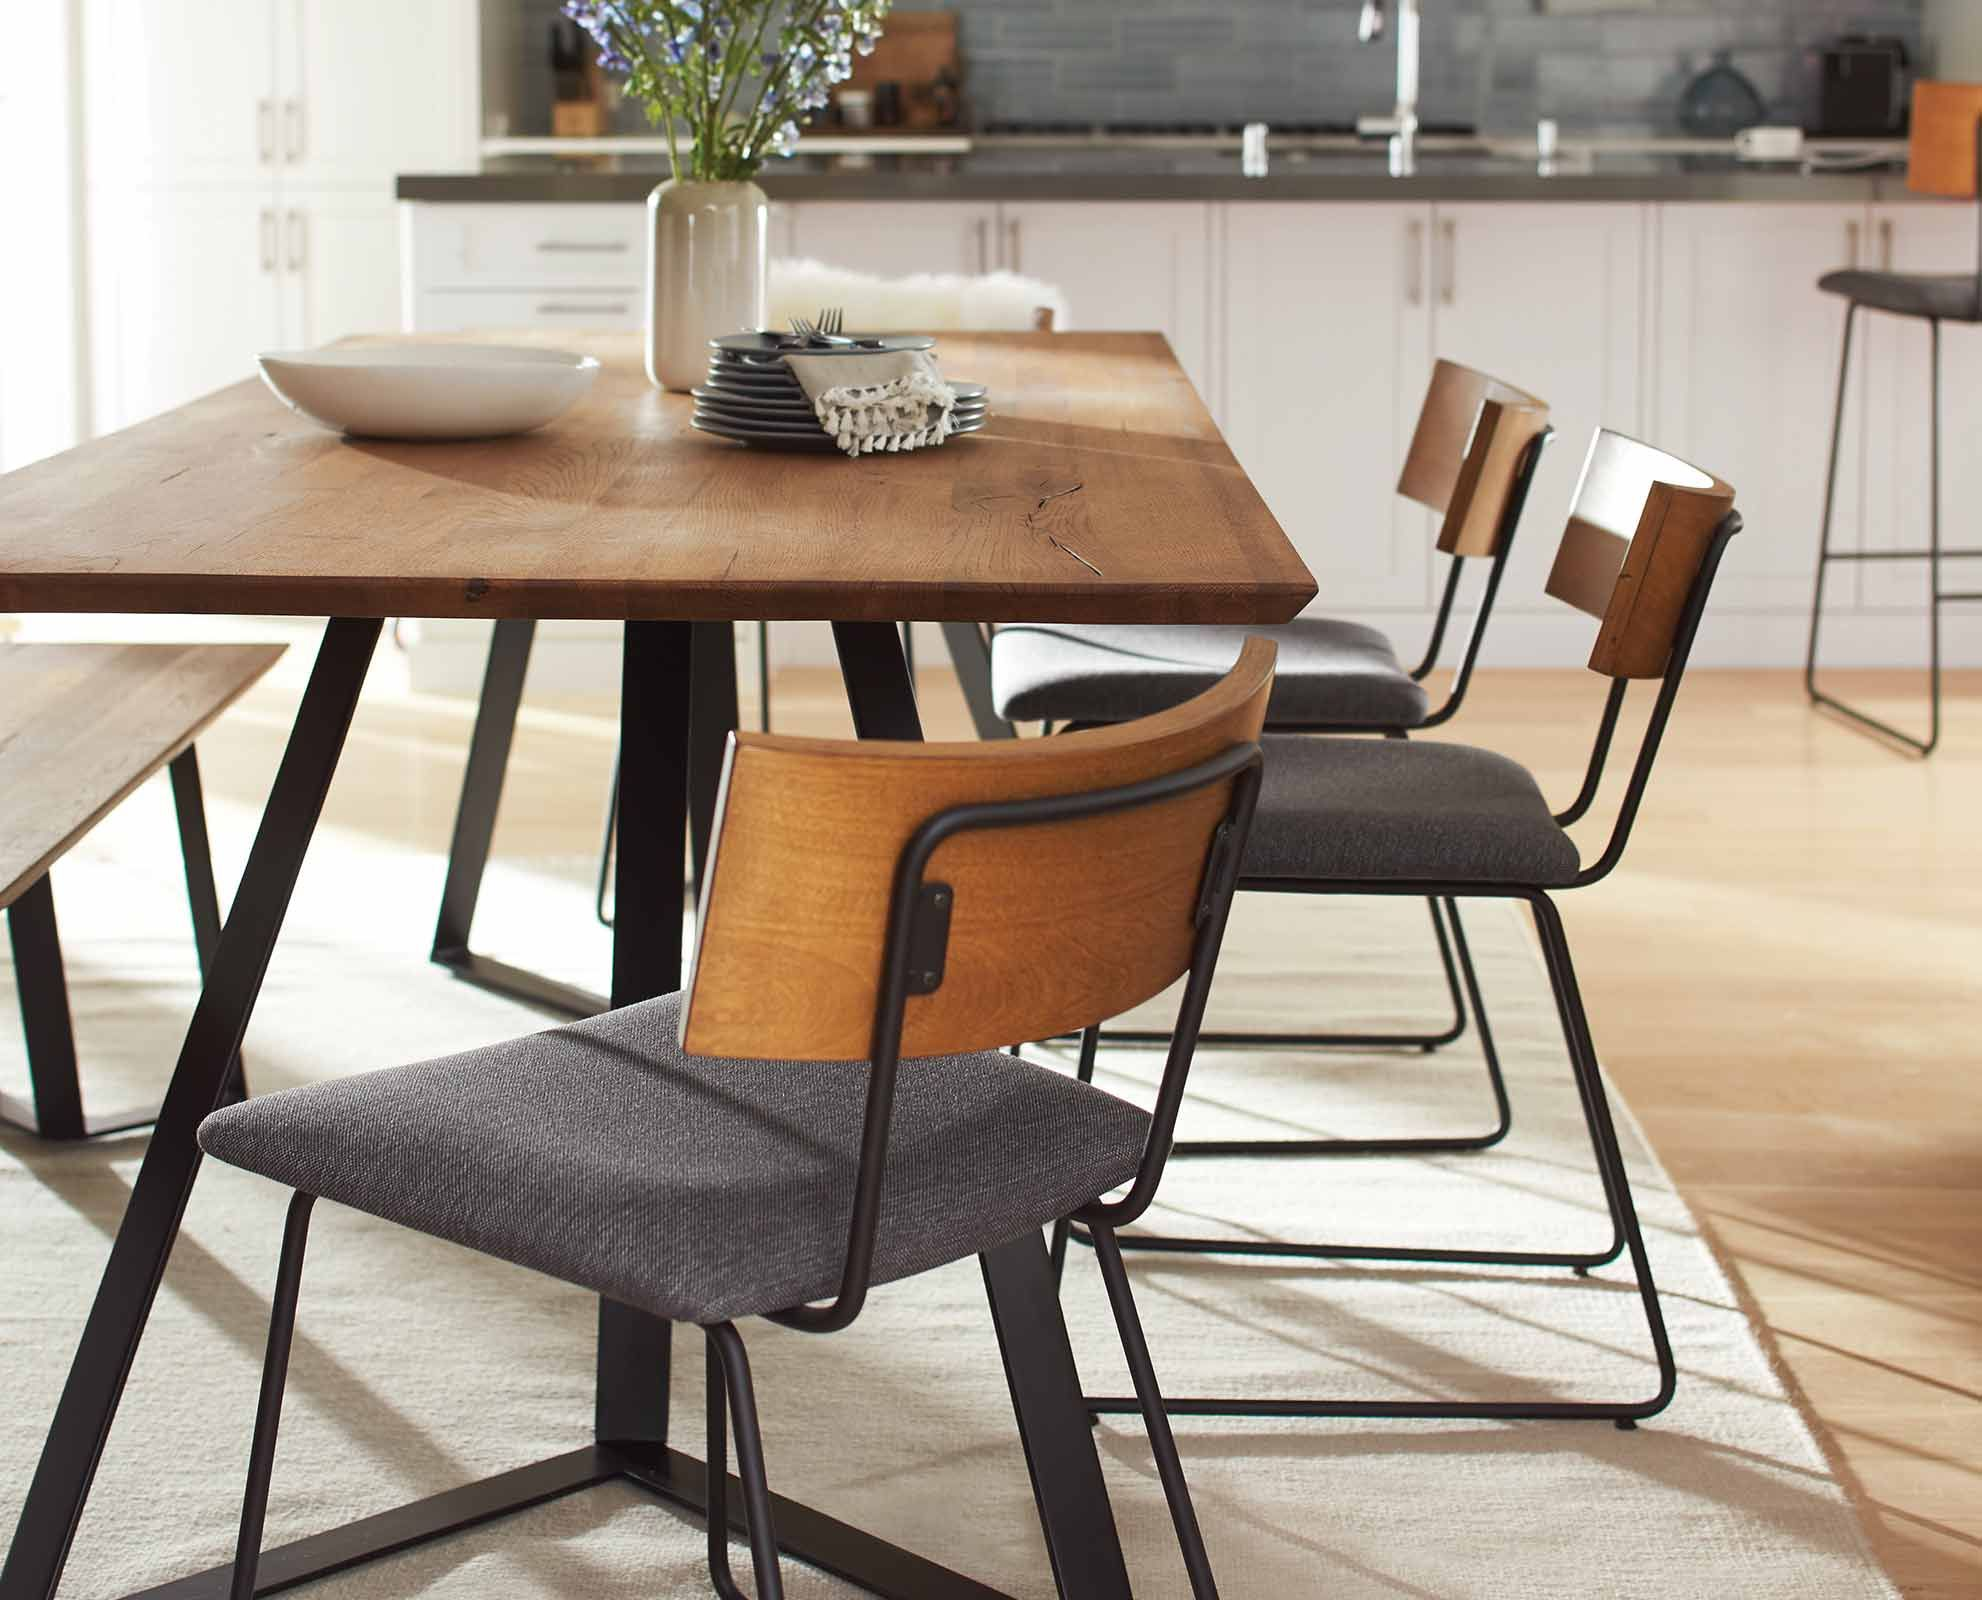 Kelner 71w Dining Table By Scandinavian Designs Set The Scene For Your Next Dinner Party With The Dining Room Industrial Dining Room Design Dining Room Chairs